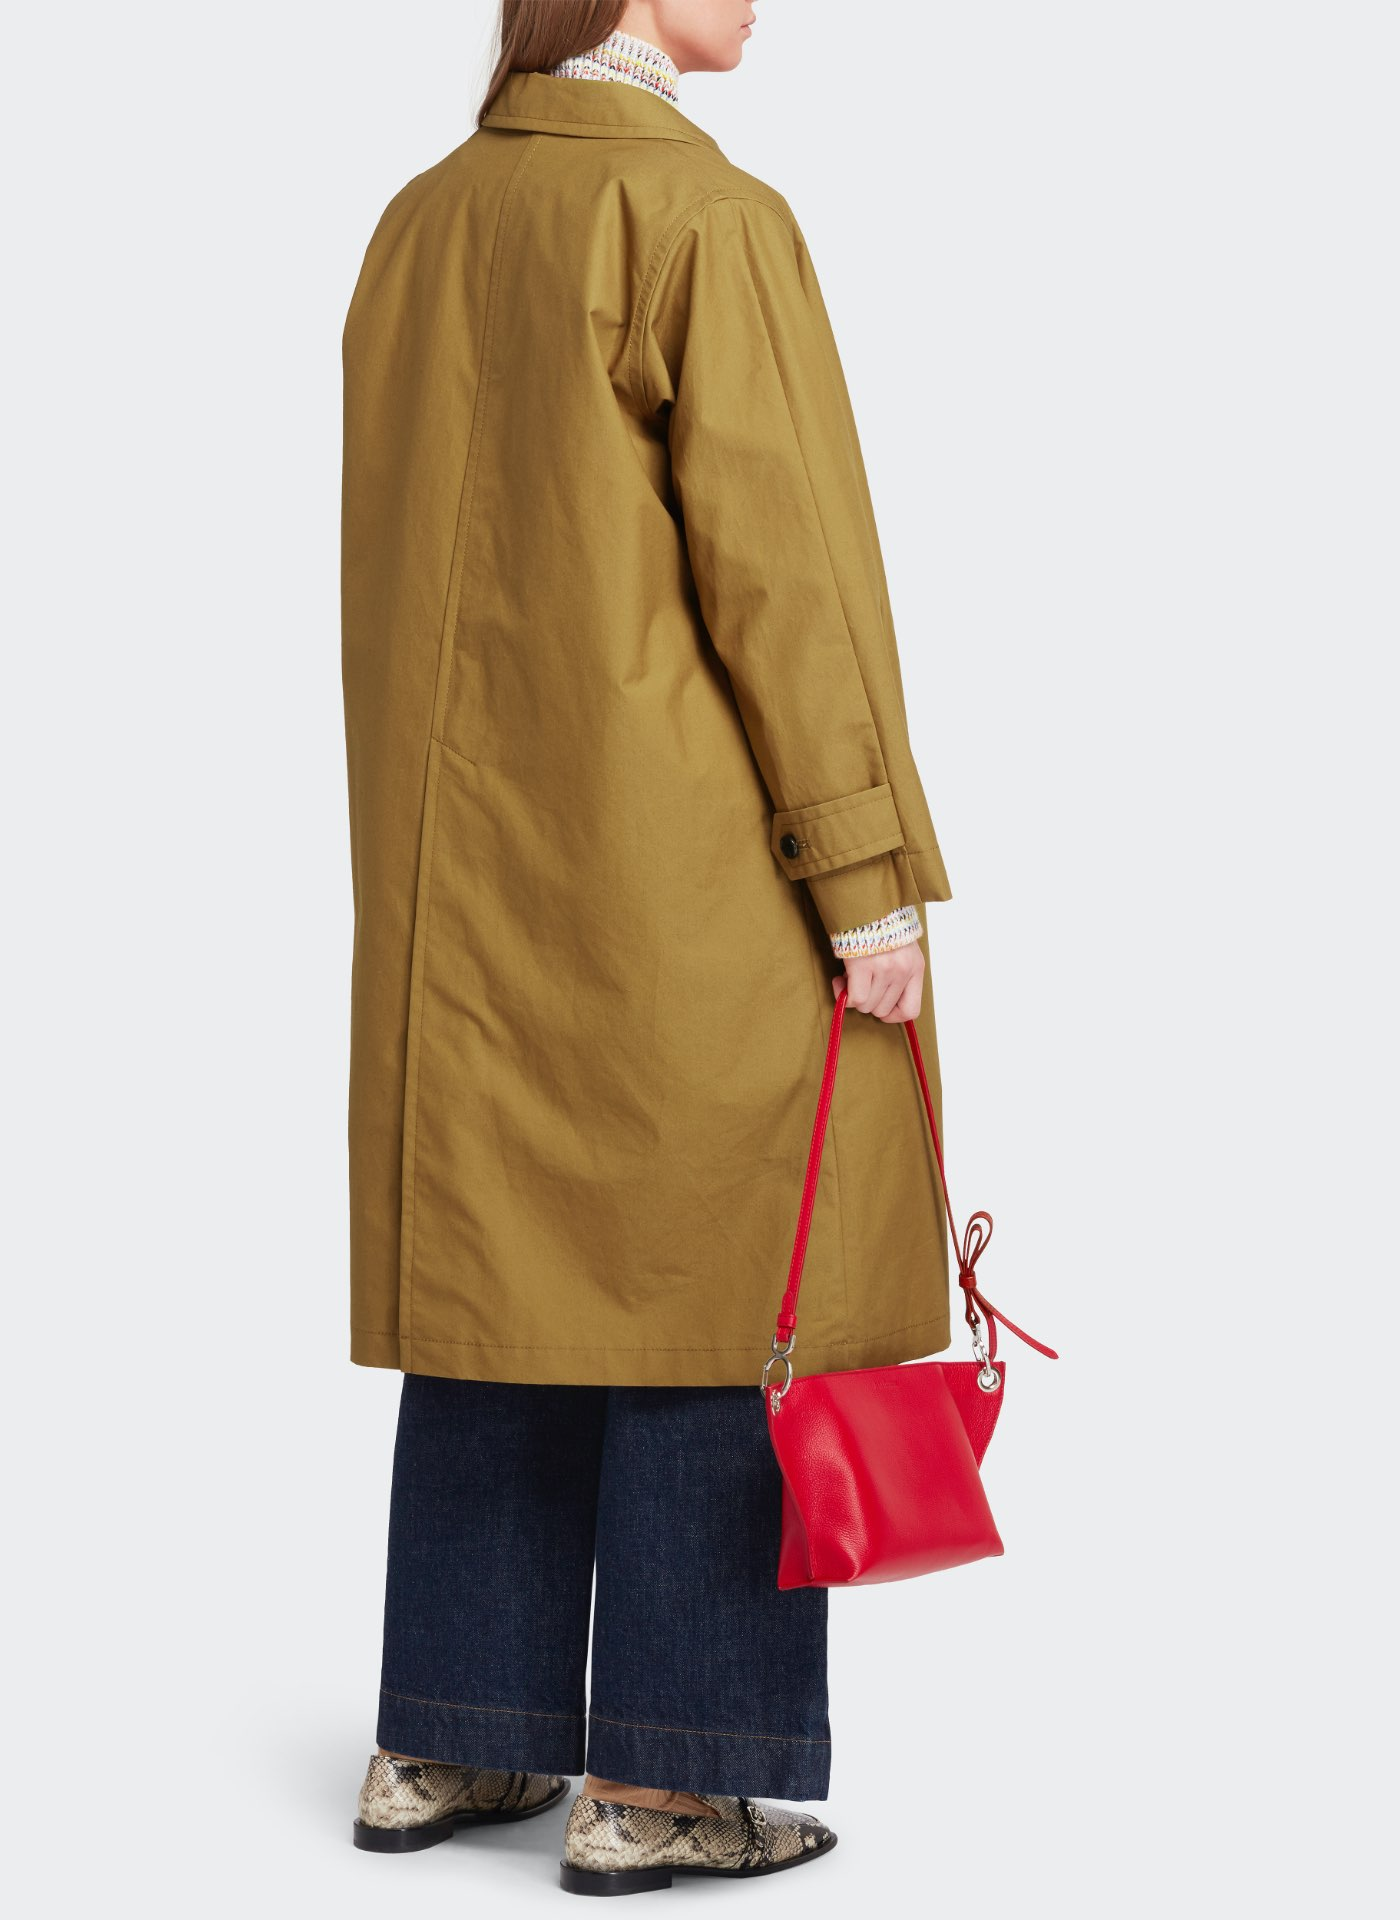 womenswear model with a long light brown jacket, red leather bag and dark blue jeans